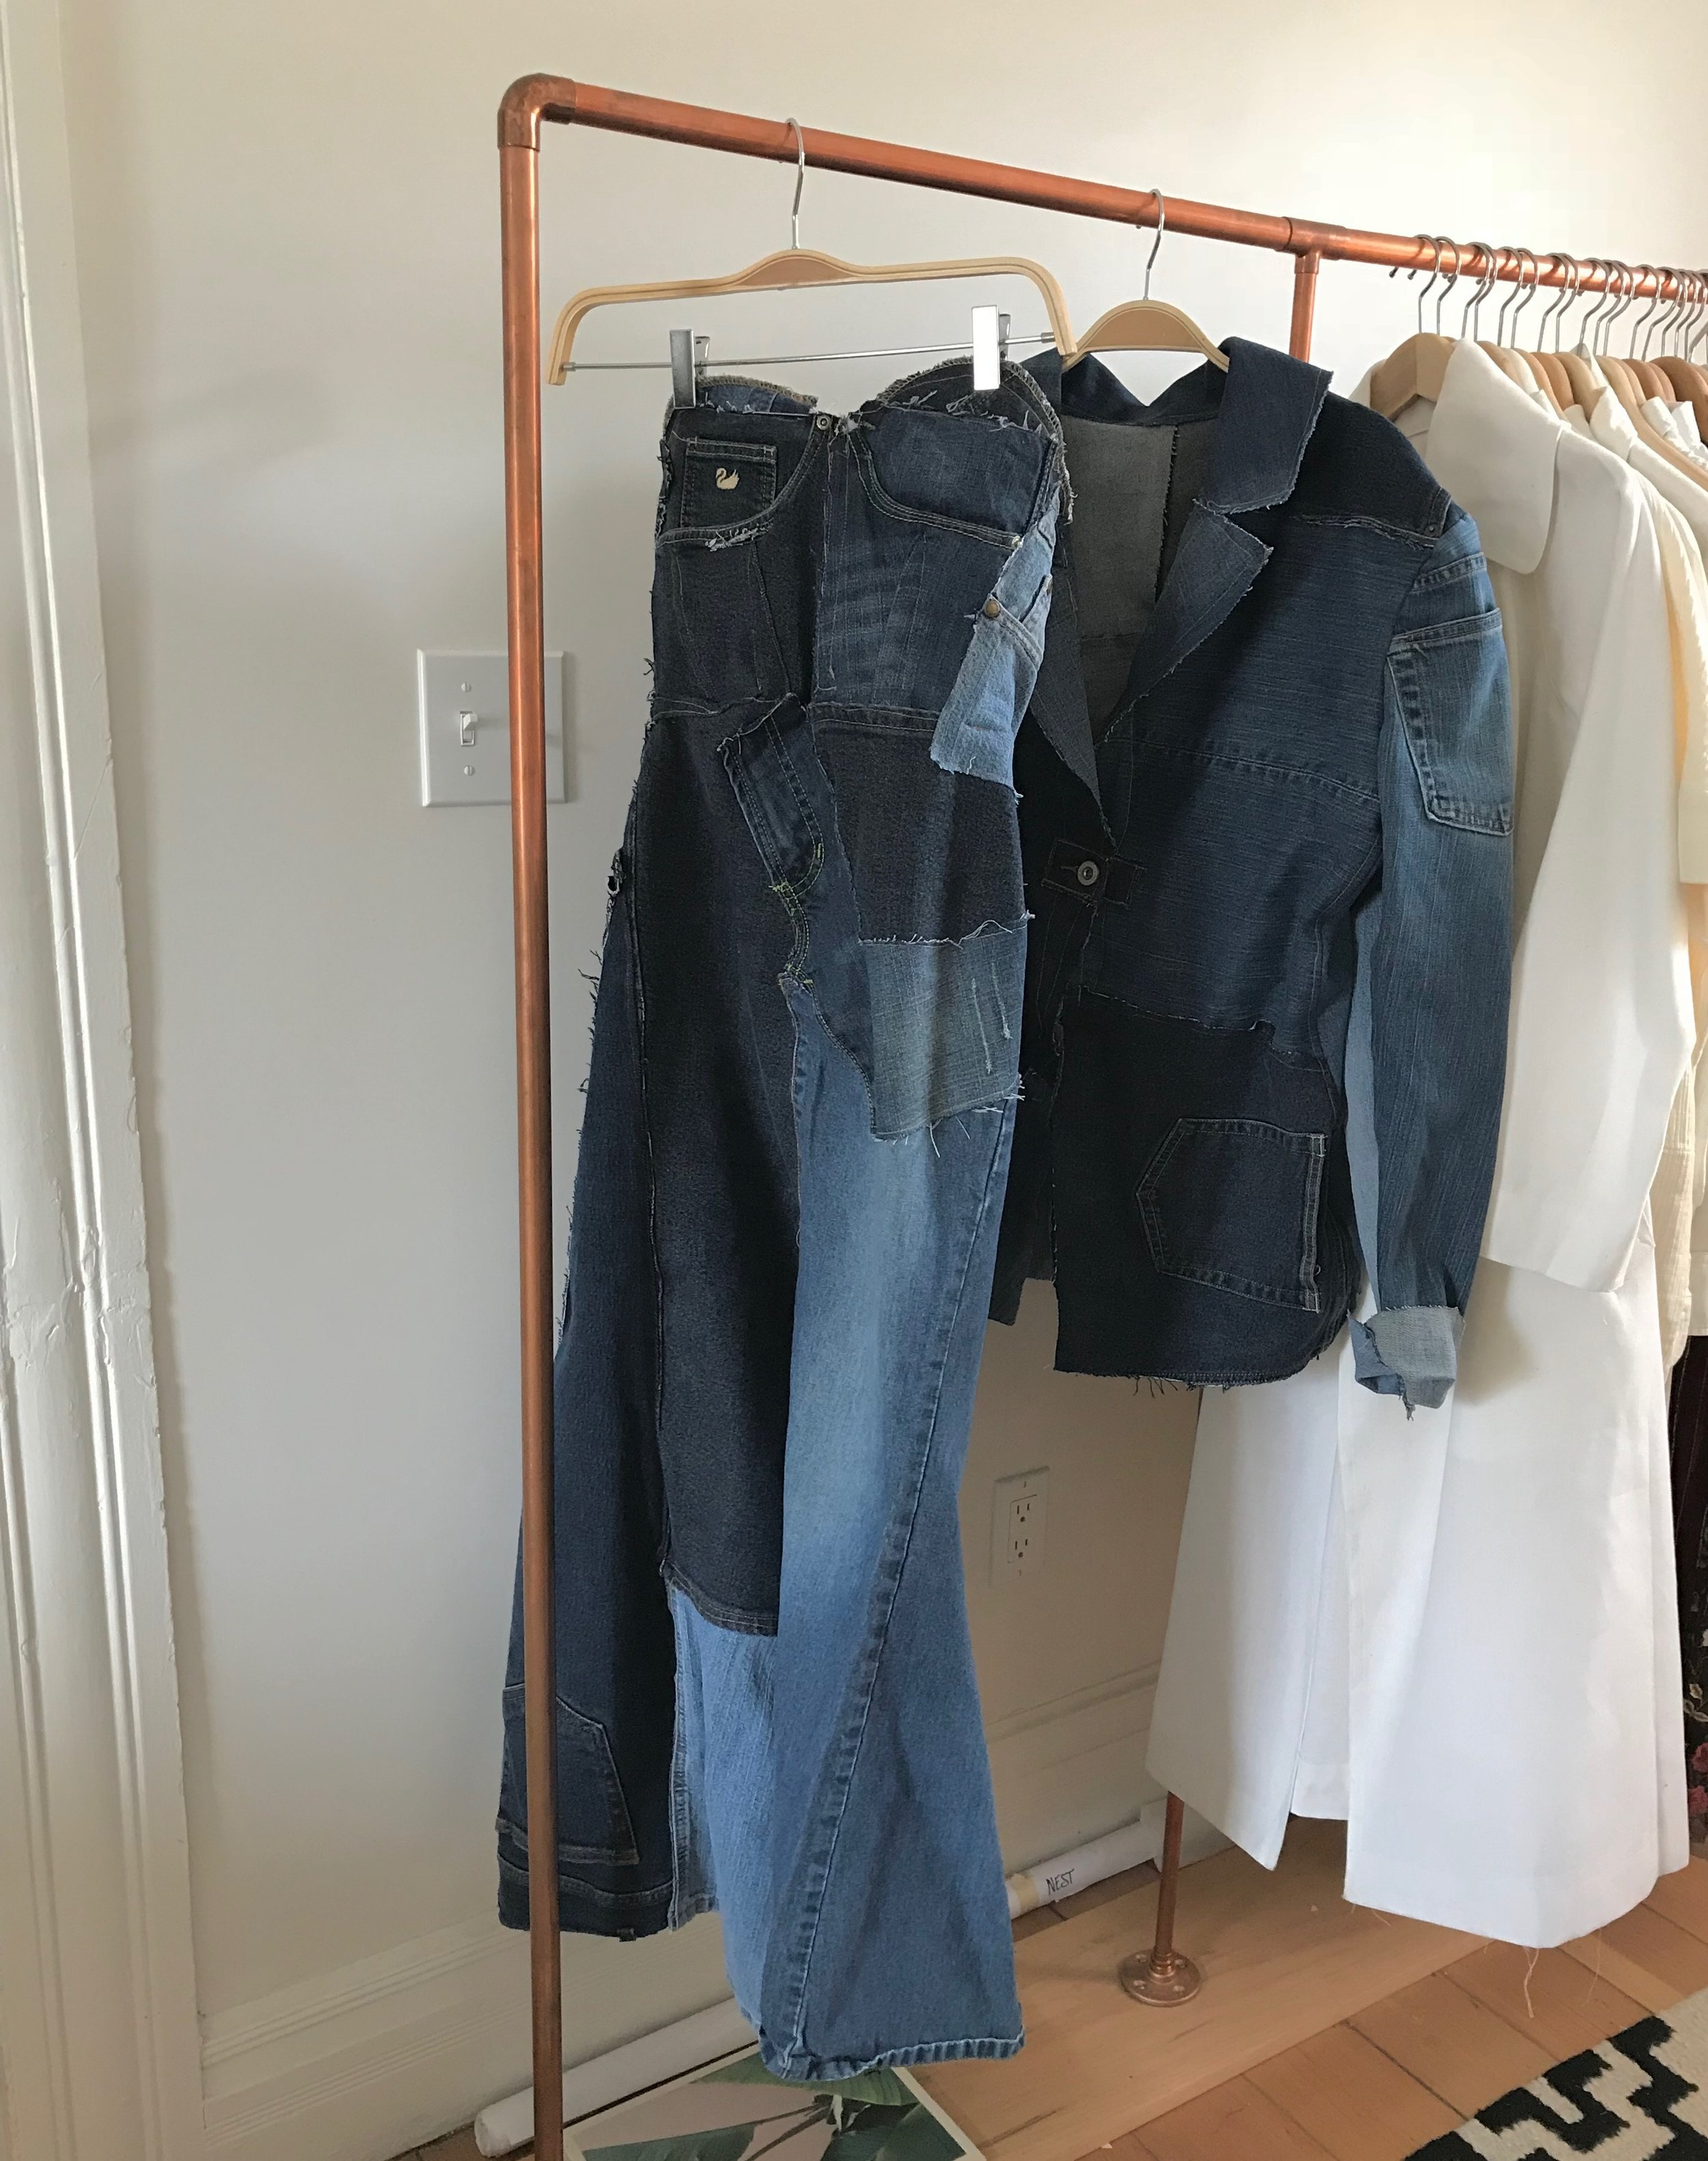 Up-cycling denim project (inspired by Britney and Justin of course)